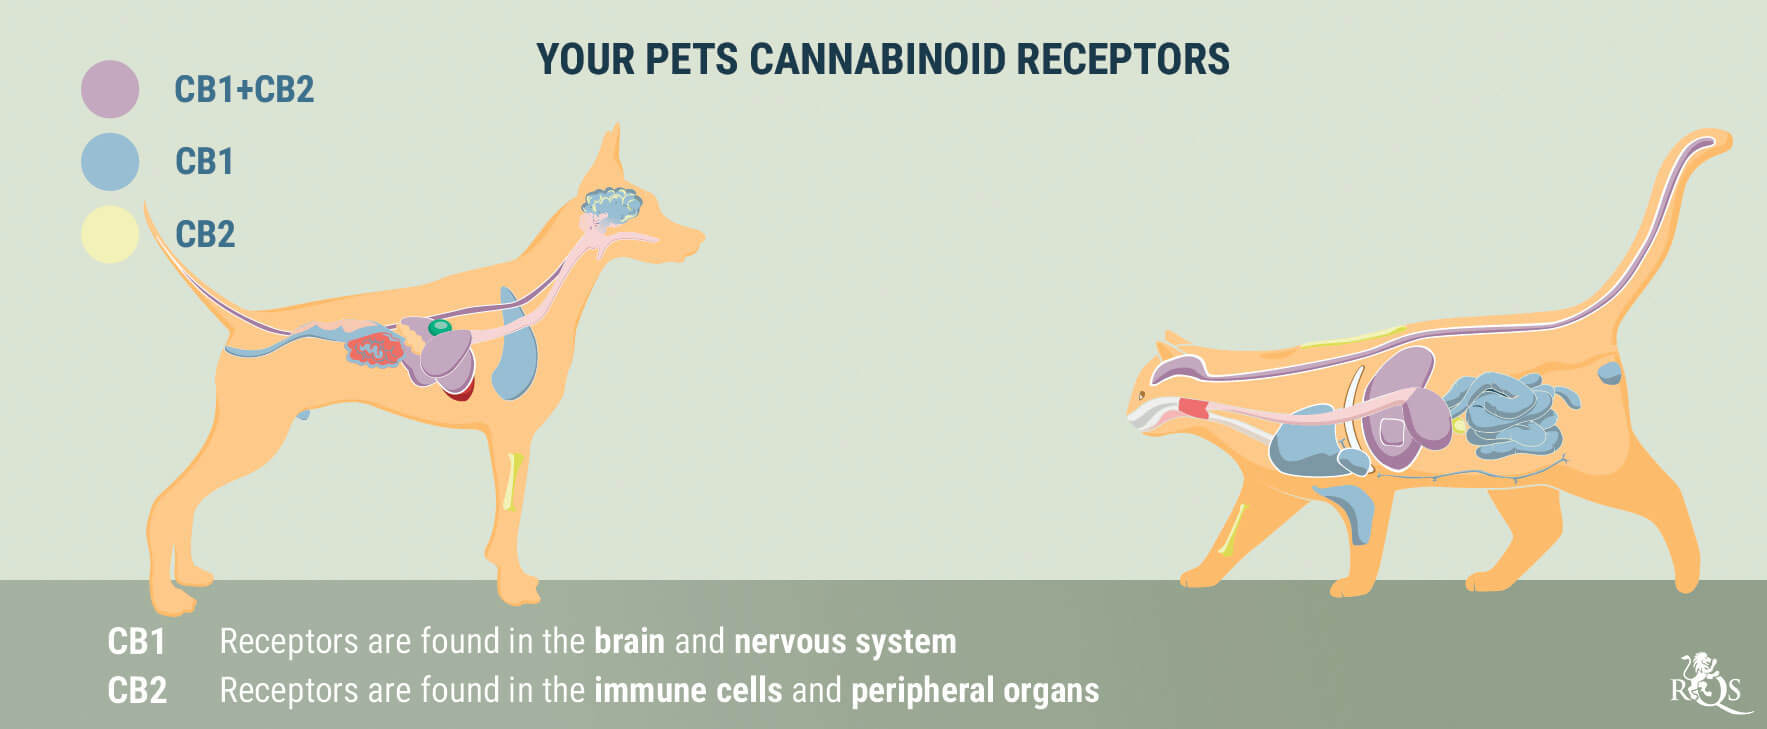 Medical Cannabis for Dogs and Cats